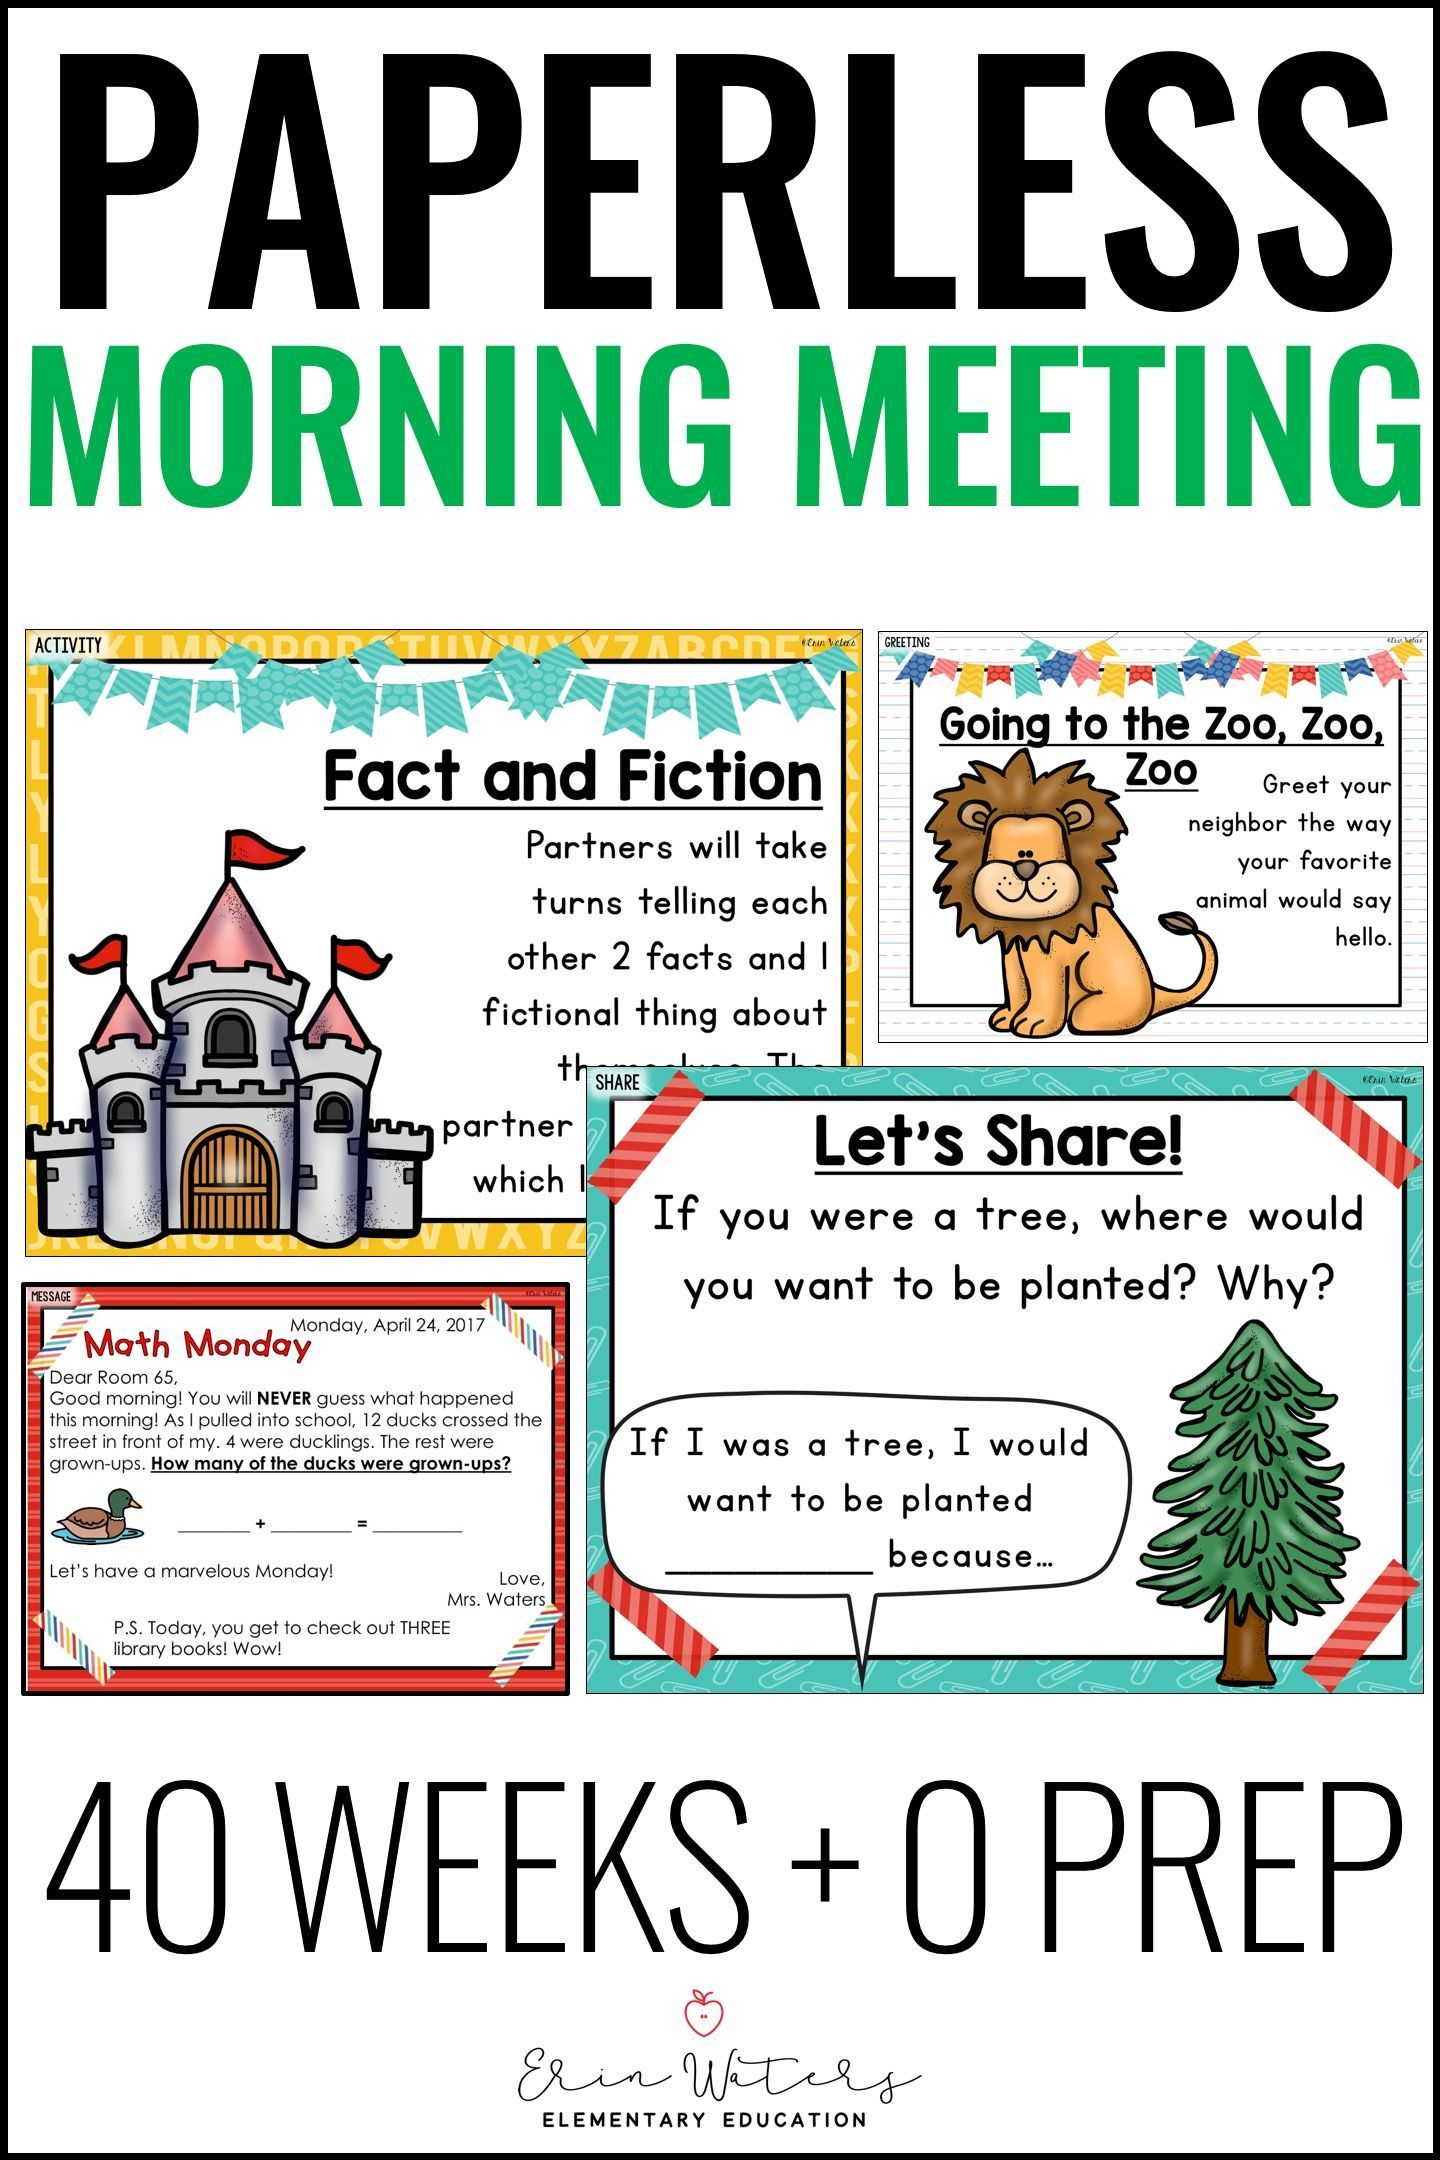 Morning Meeting Slides | Morning Meeting Activities , Greetings, Share, + More #morningroutine